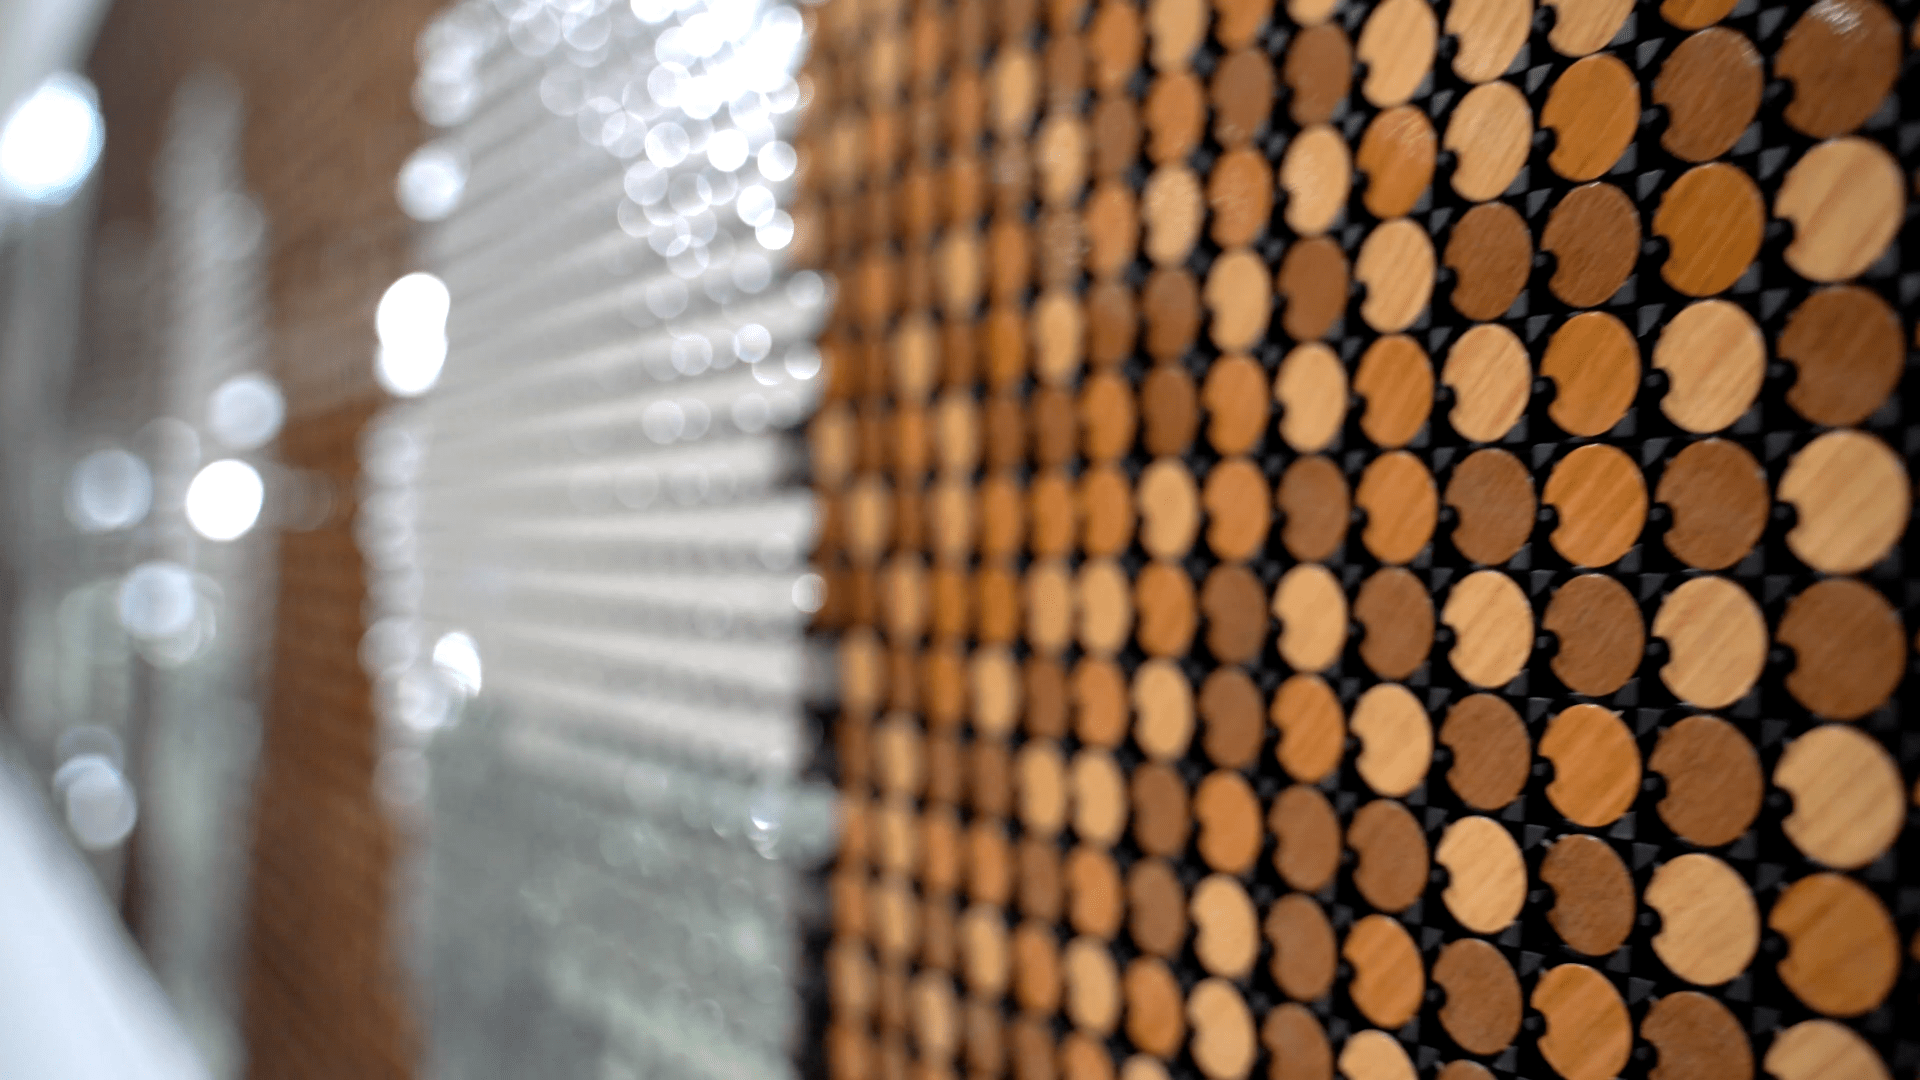 Close-up of wood and silver Flip-Discs art installation called